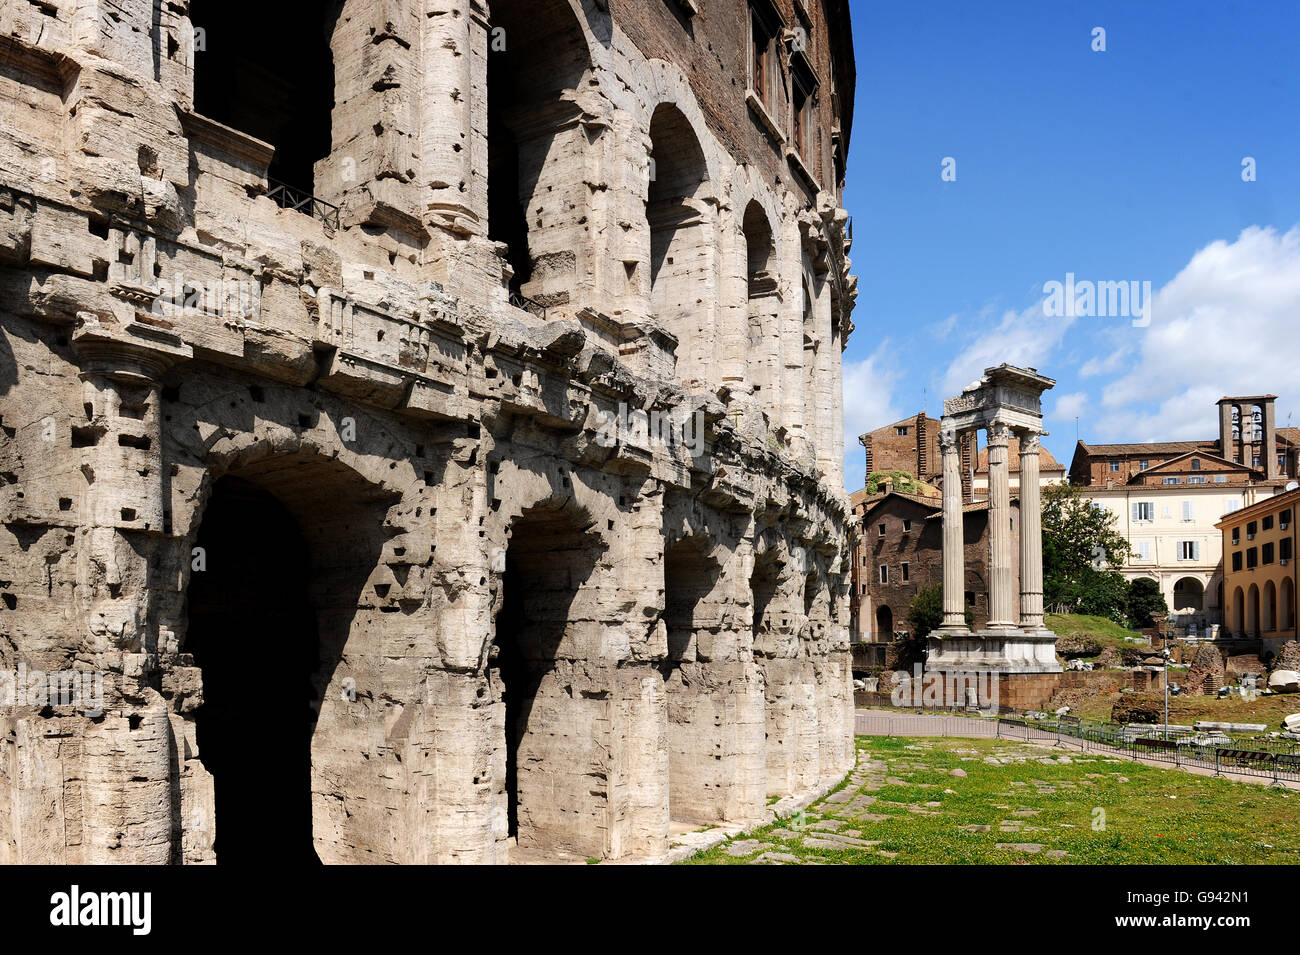 Rome, Italy. Theatre of Marcellus. Picture by Paul Heyes, Wednesday June 01, 2016. - Stock Image